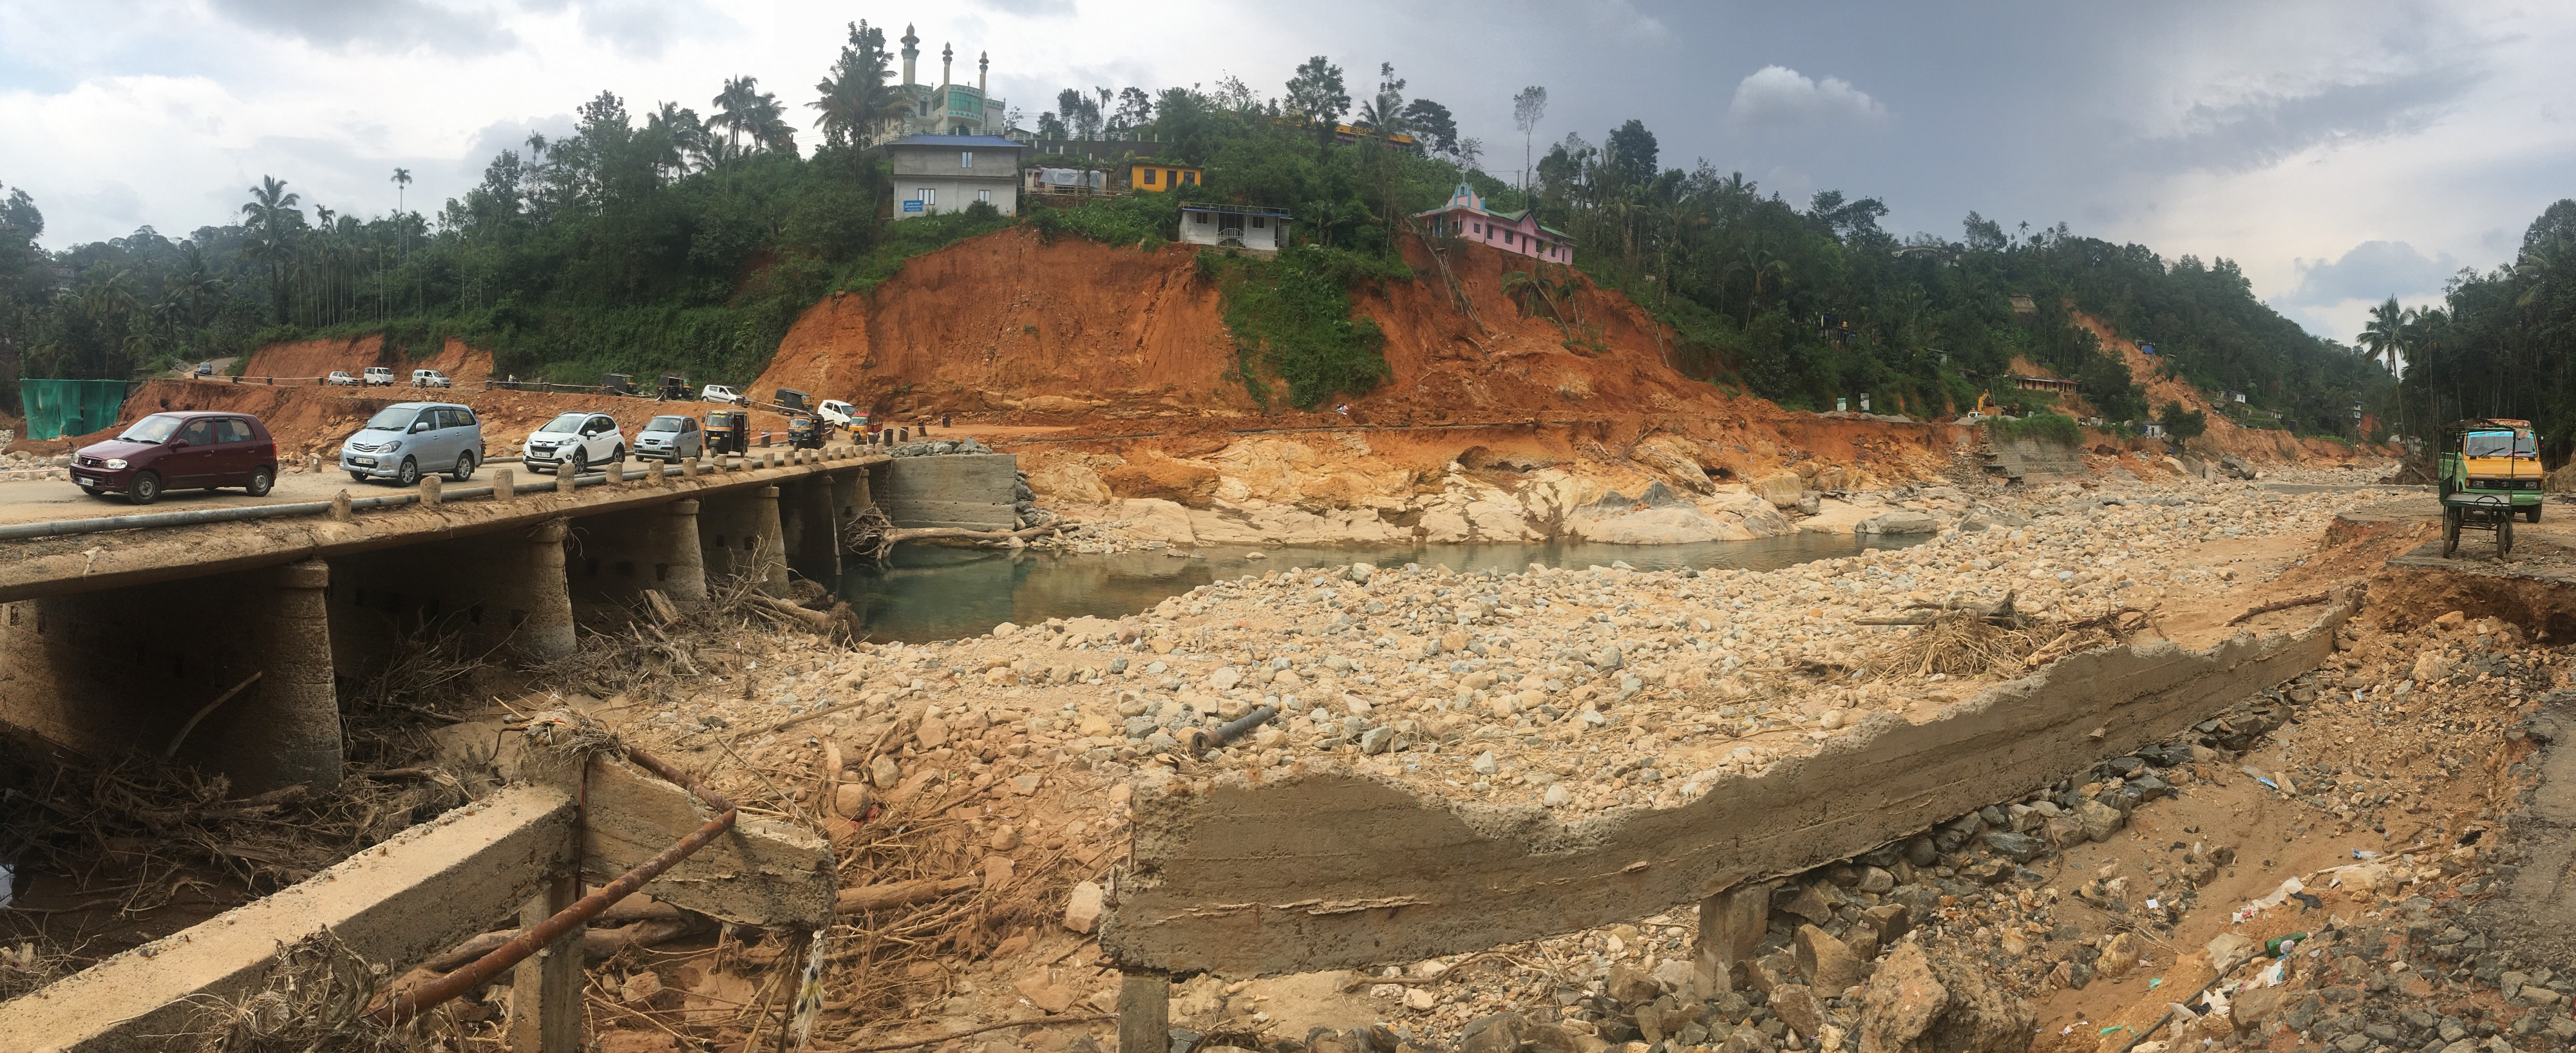 How much do floods cost India? - World of Opportunity - Medium